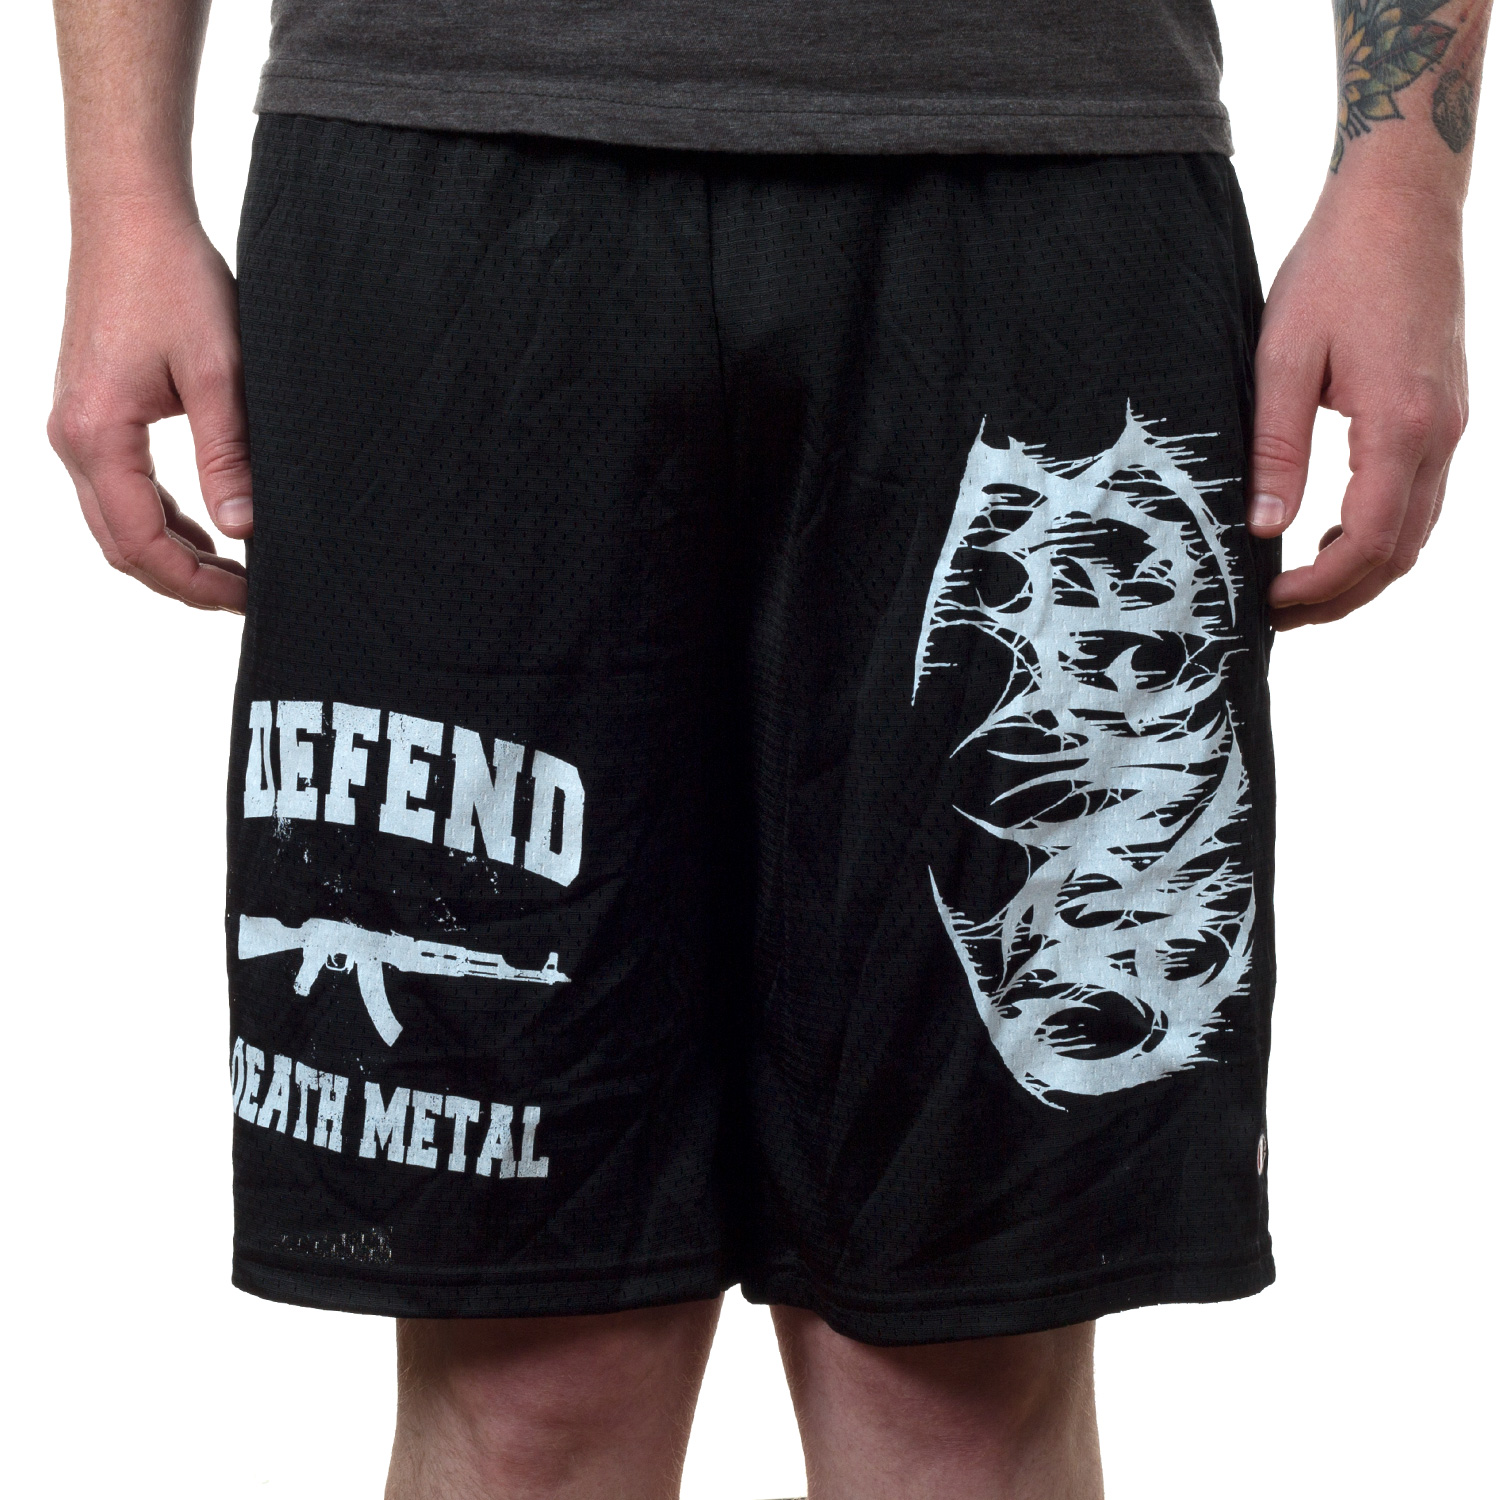 Defend Death Metal